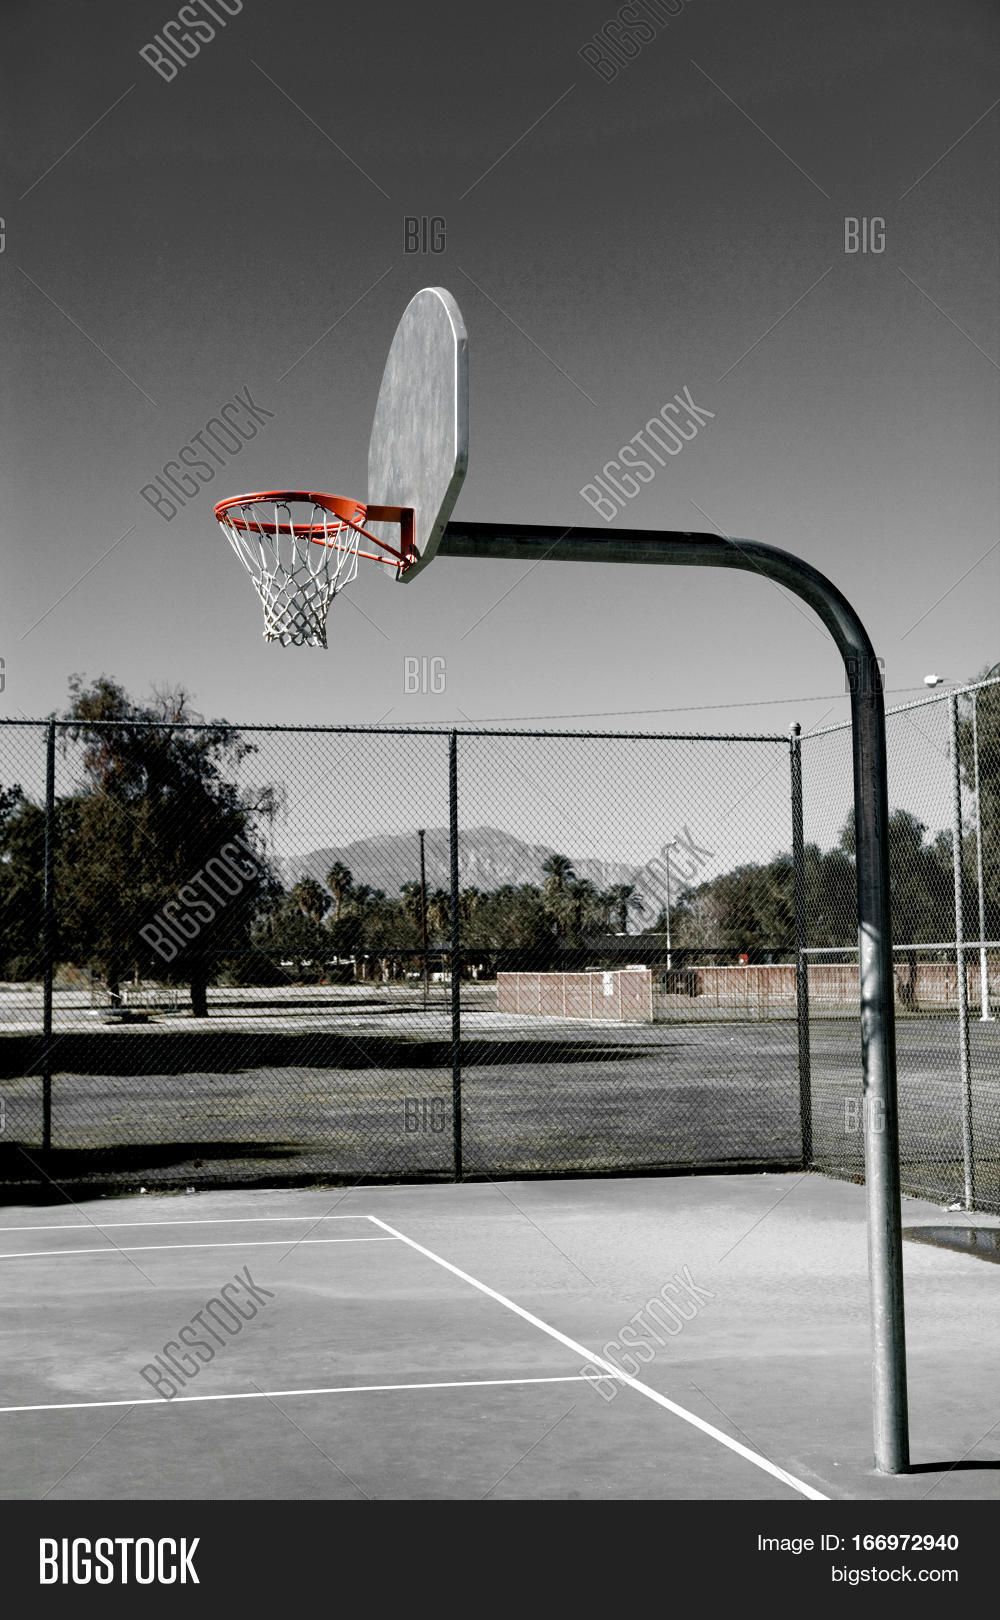 Playground basketball court stock photo stock images for How big is a basketball court